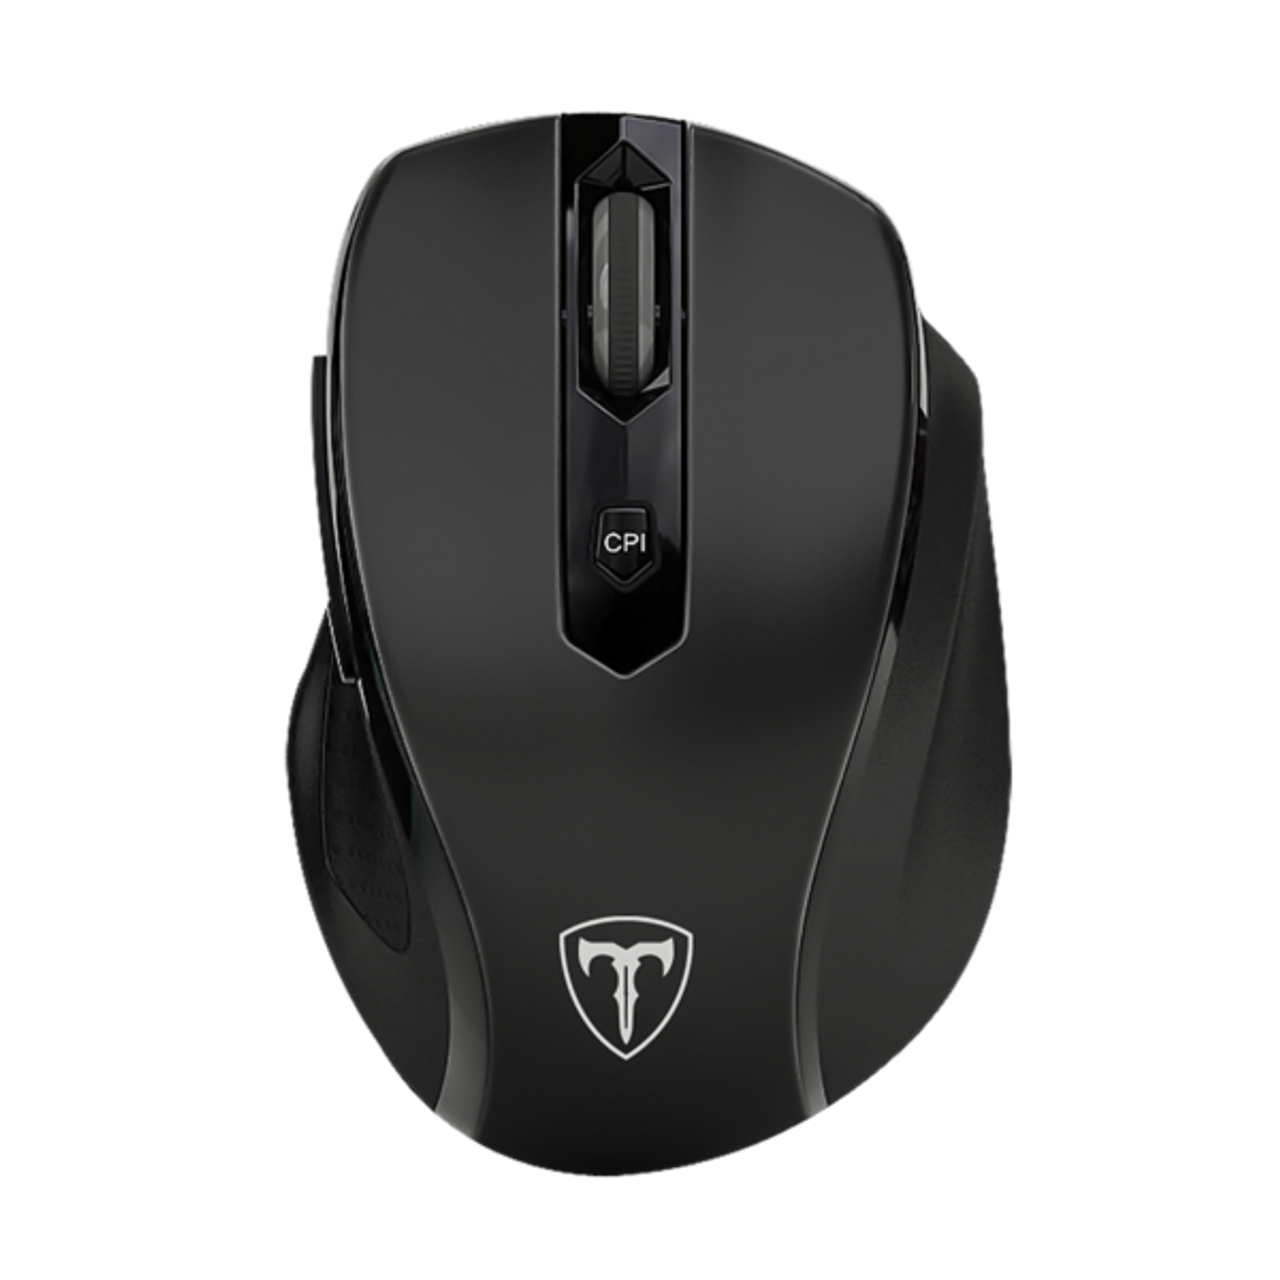 T-DAGGER Corporal T-TGWM100 Wireless Gaming Mouse | AYOUB